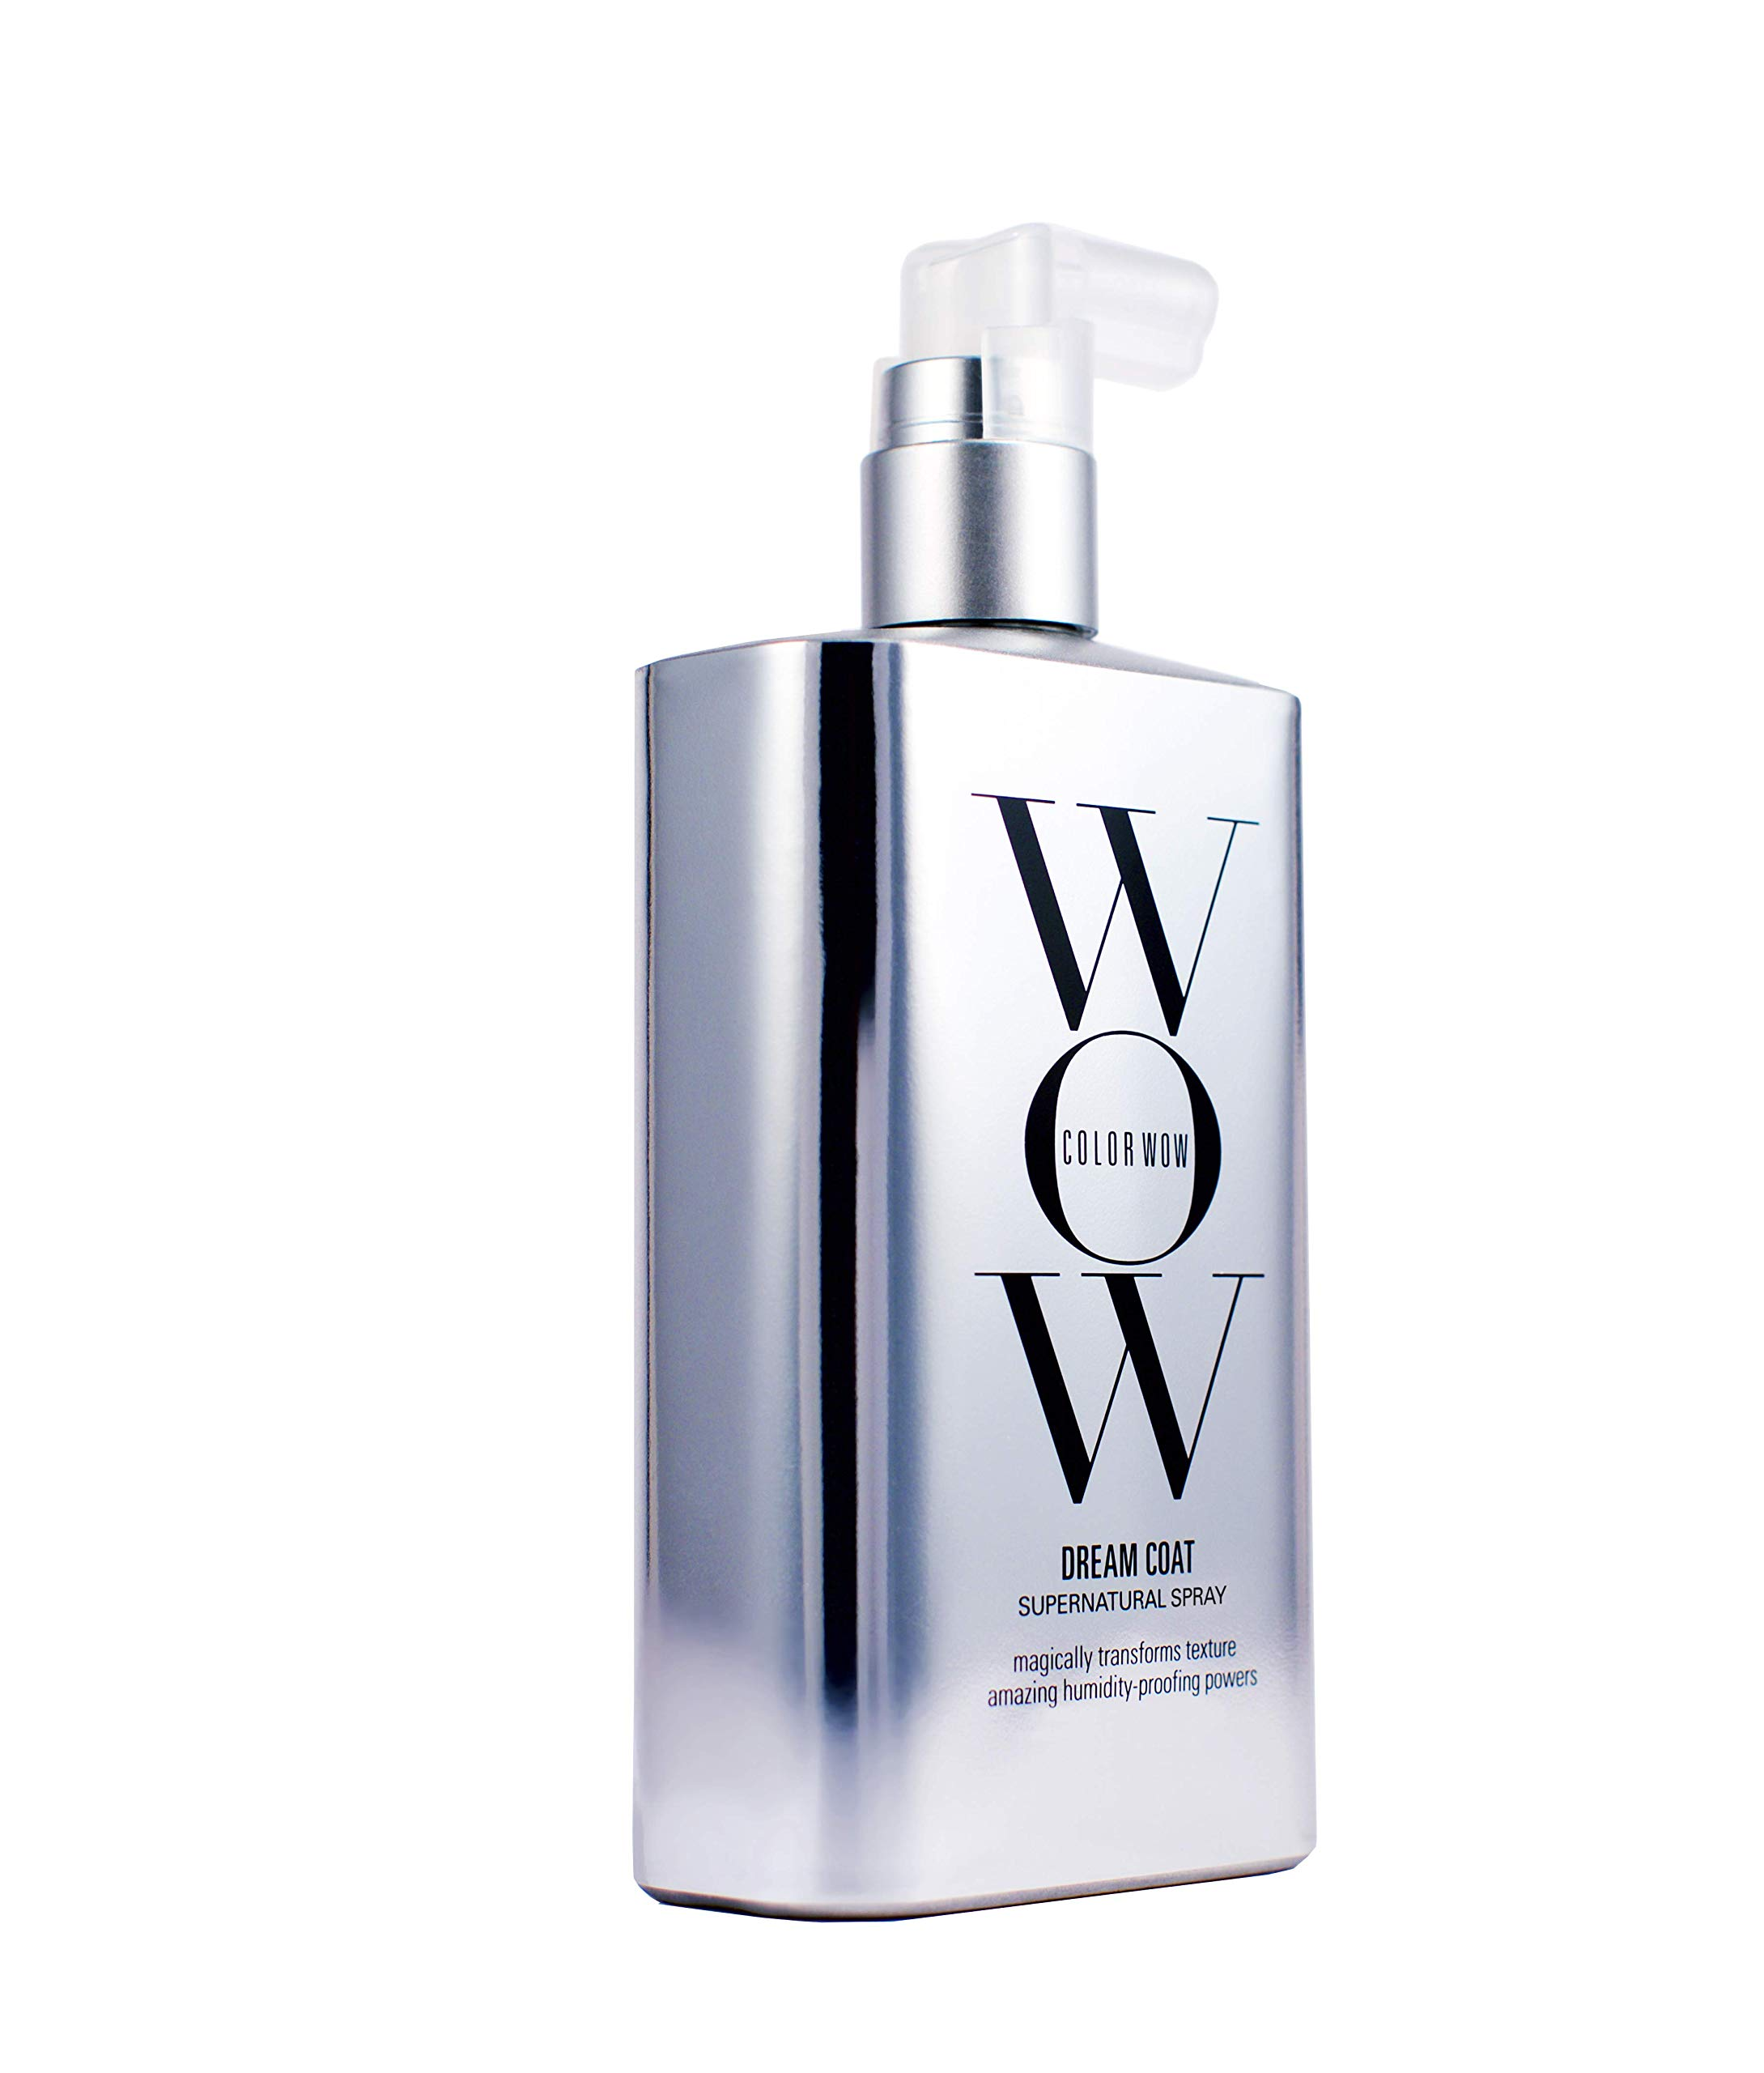 COLOR WOW Dream Coat Supernatural Spray Slays Humidity and Prevents Frizz, 6.7 Fl Oz by COLOR WOW